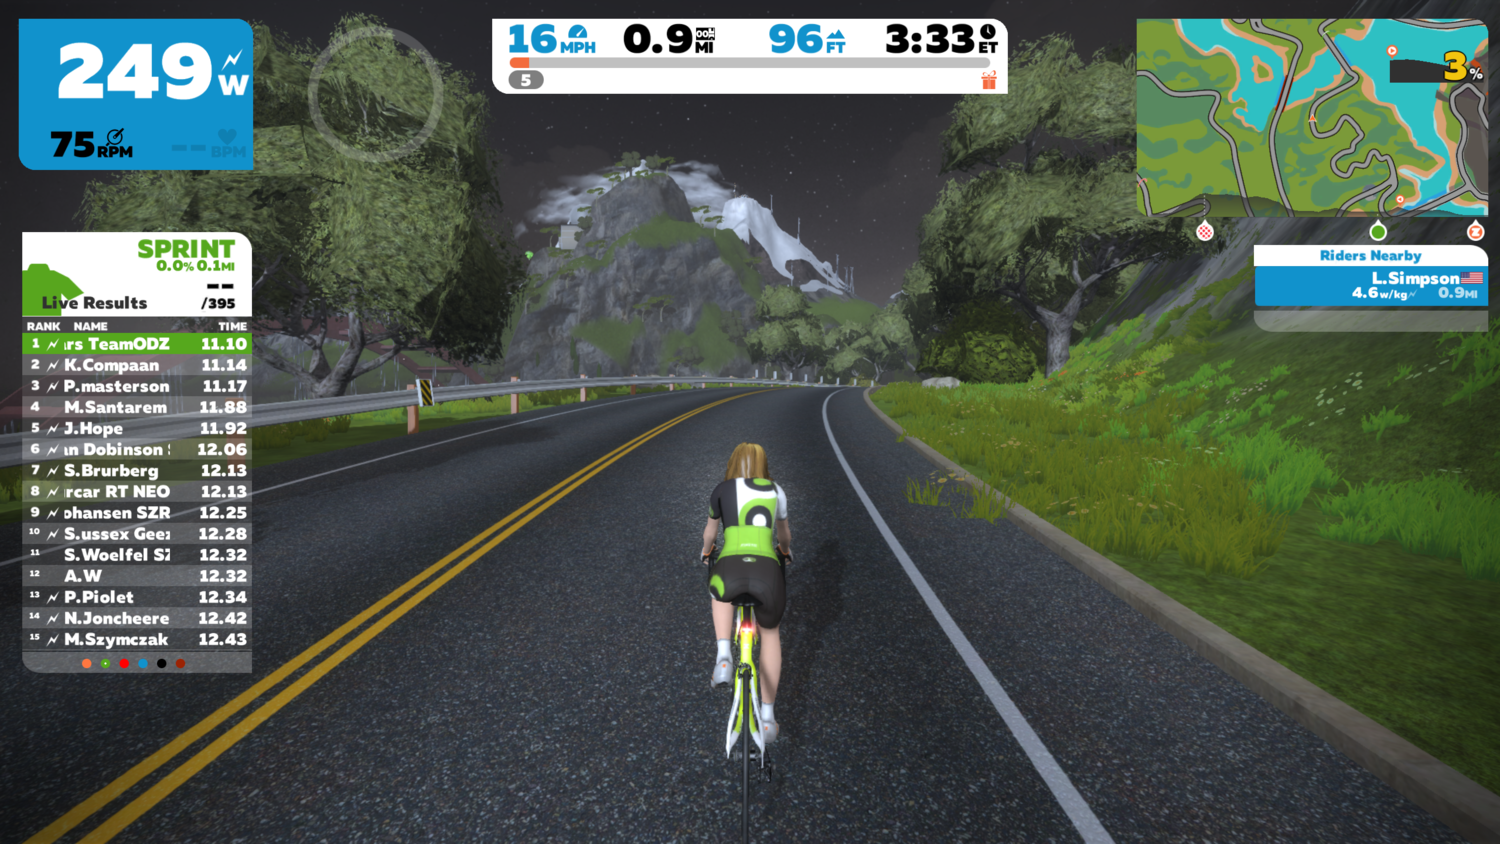 Kinetic — Getting Started With Zwift - Bike Trainer